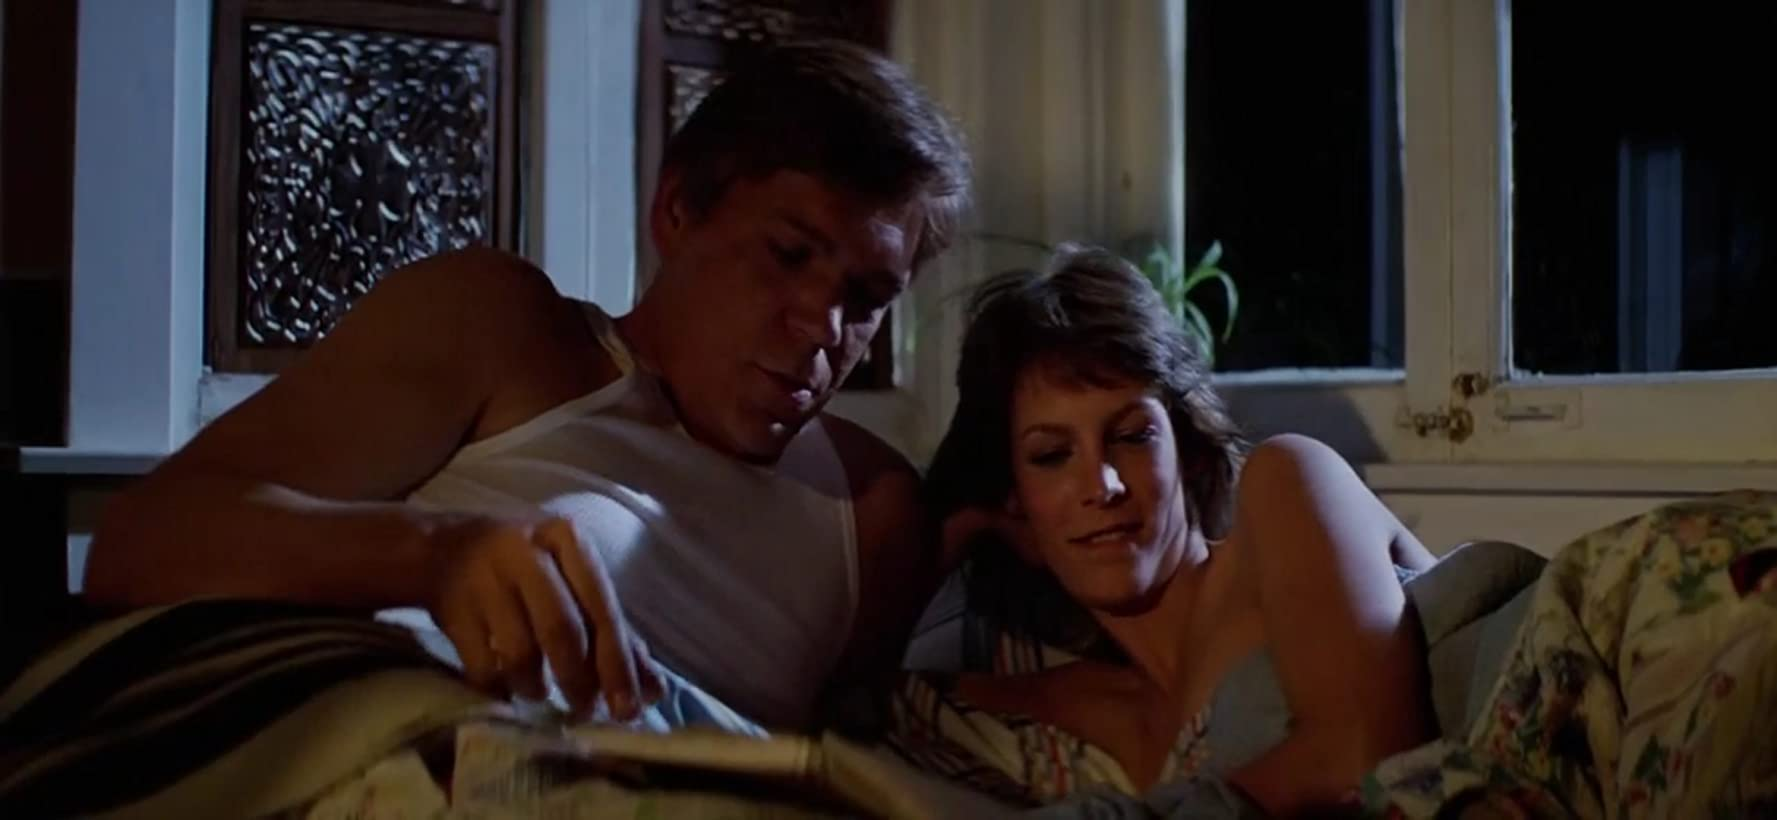 Tom Atkins and Jamie Lee Curtis in John Carpenter's The Fog.